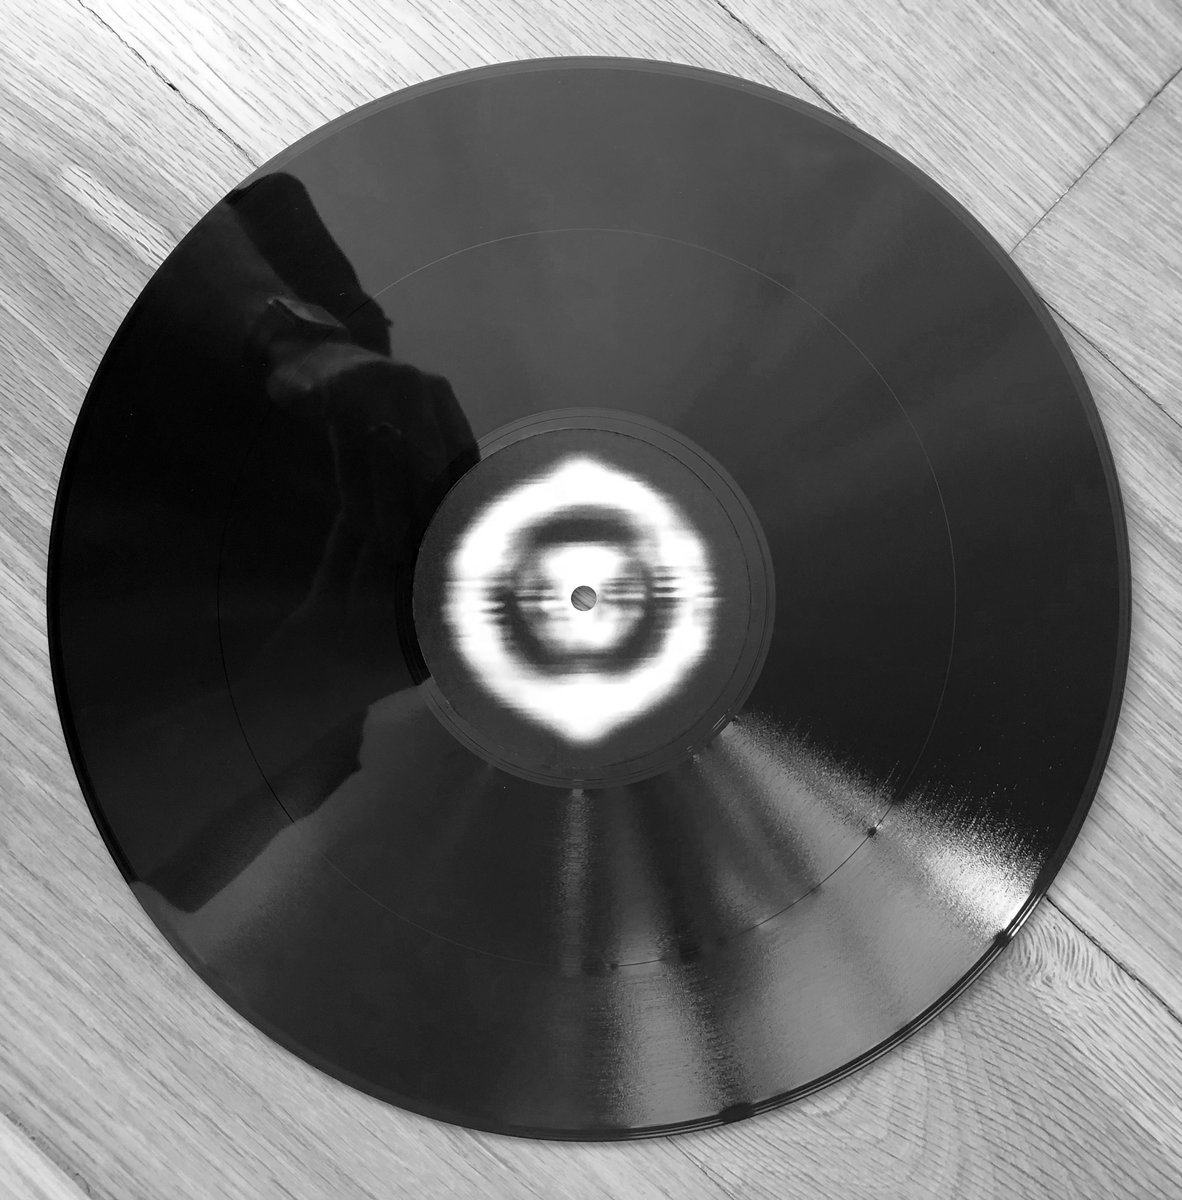 Limited Edition 180gm Dubplates Now Available